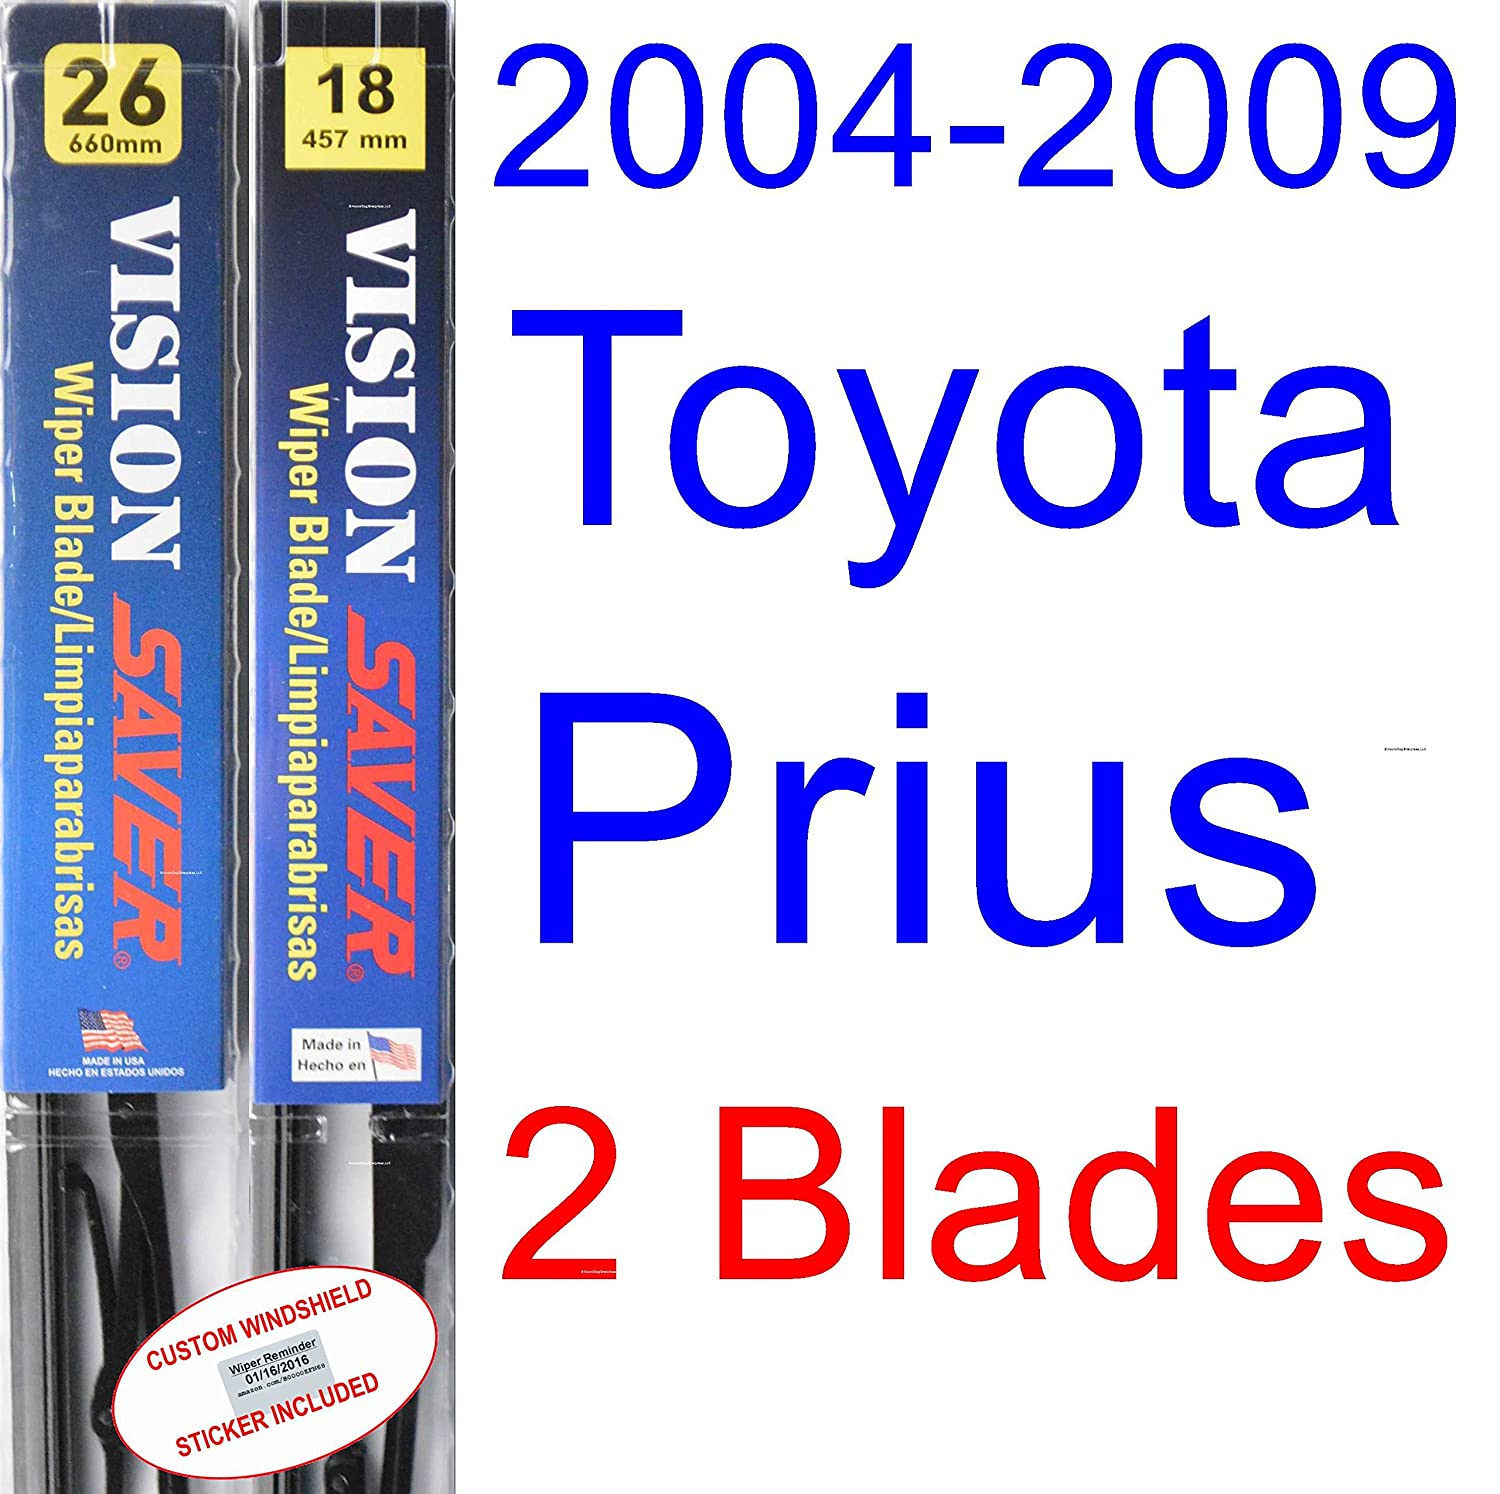 Amazon.com: 2004-2009 Toyota Prius Replacement Wiper Blade Set/Kit (Set of 2 Blades) (Saver Automotive Products-Vision Saver) (2005,2006,2007,2008): ...